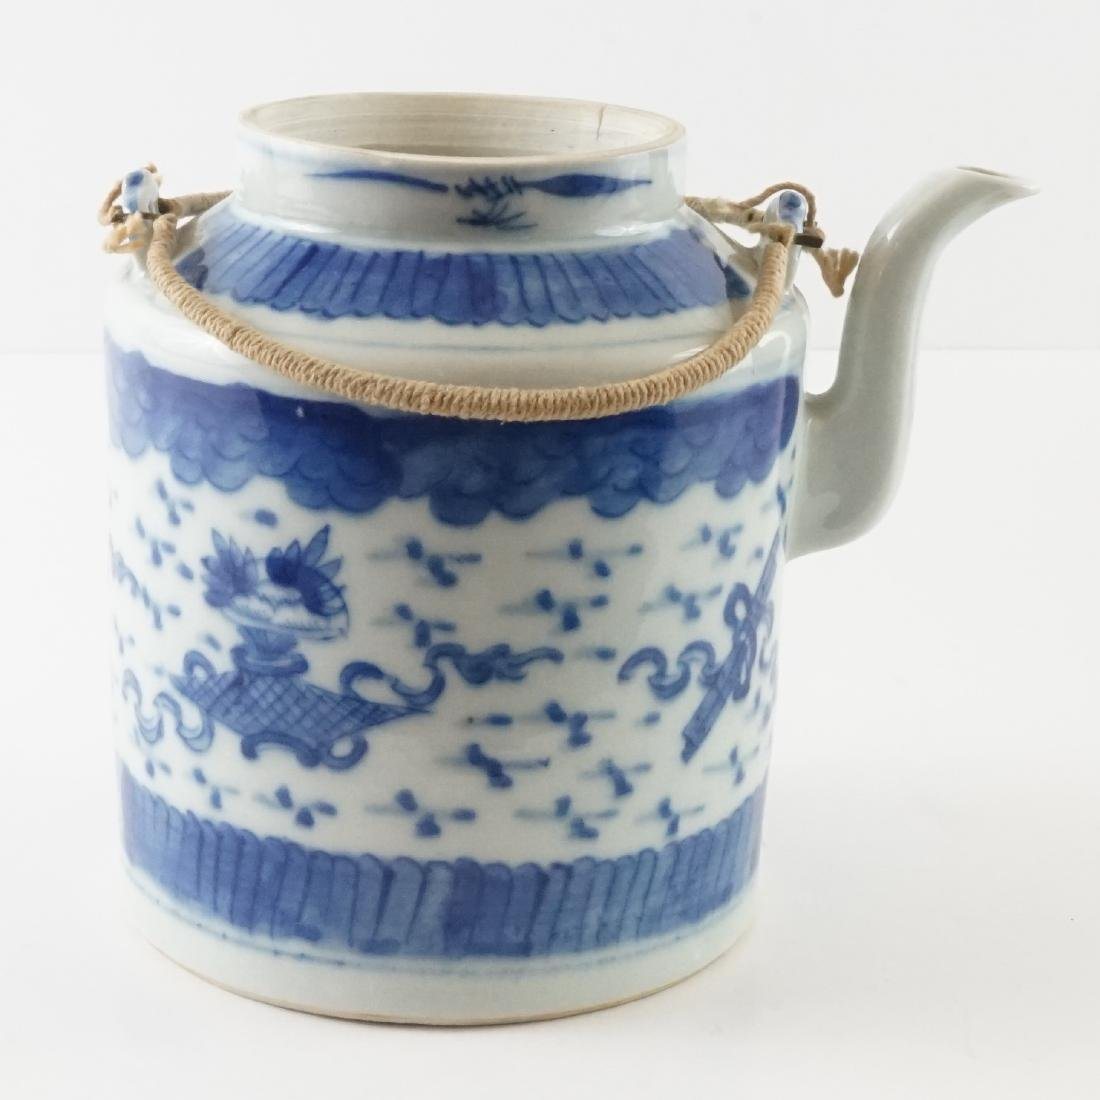 Old Chinese Teapot in Basket - 2